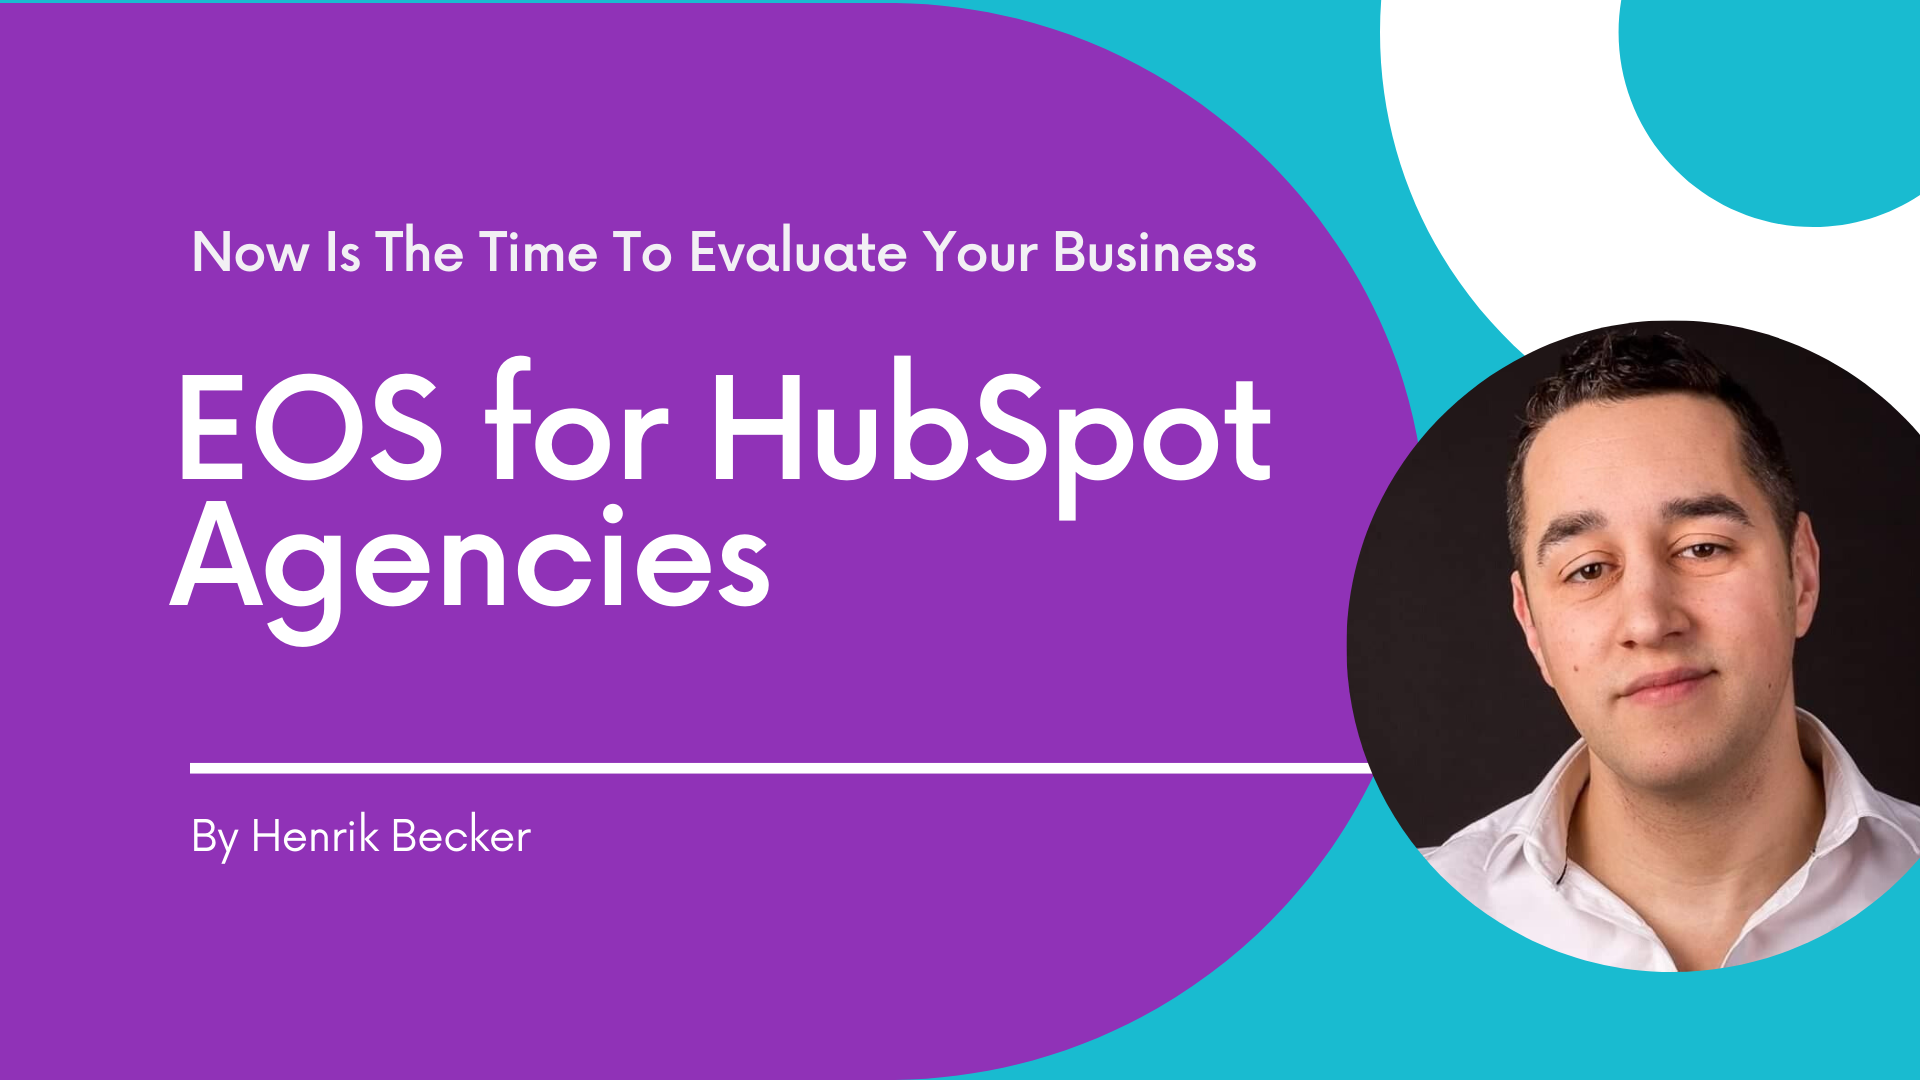 eos-for-hubspot-agencies